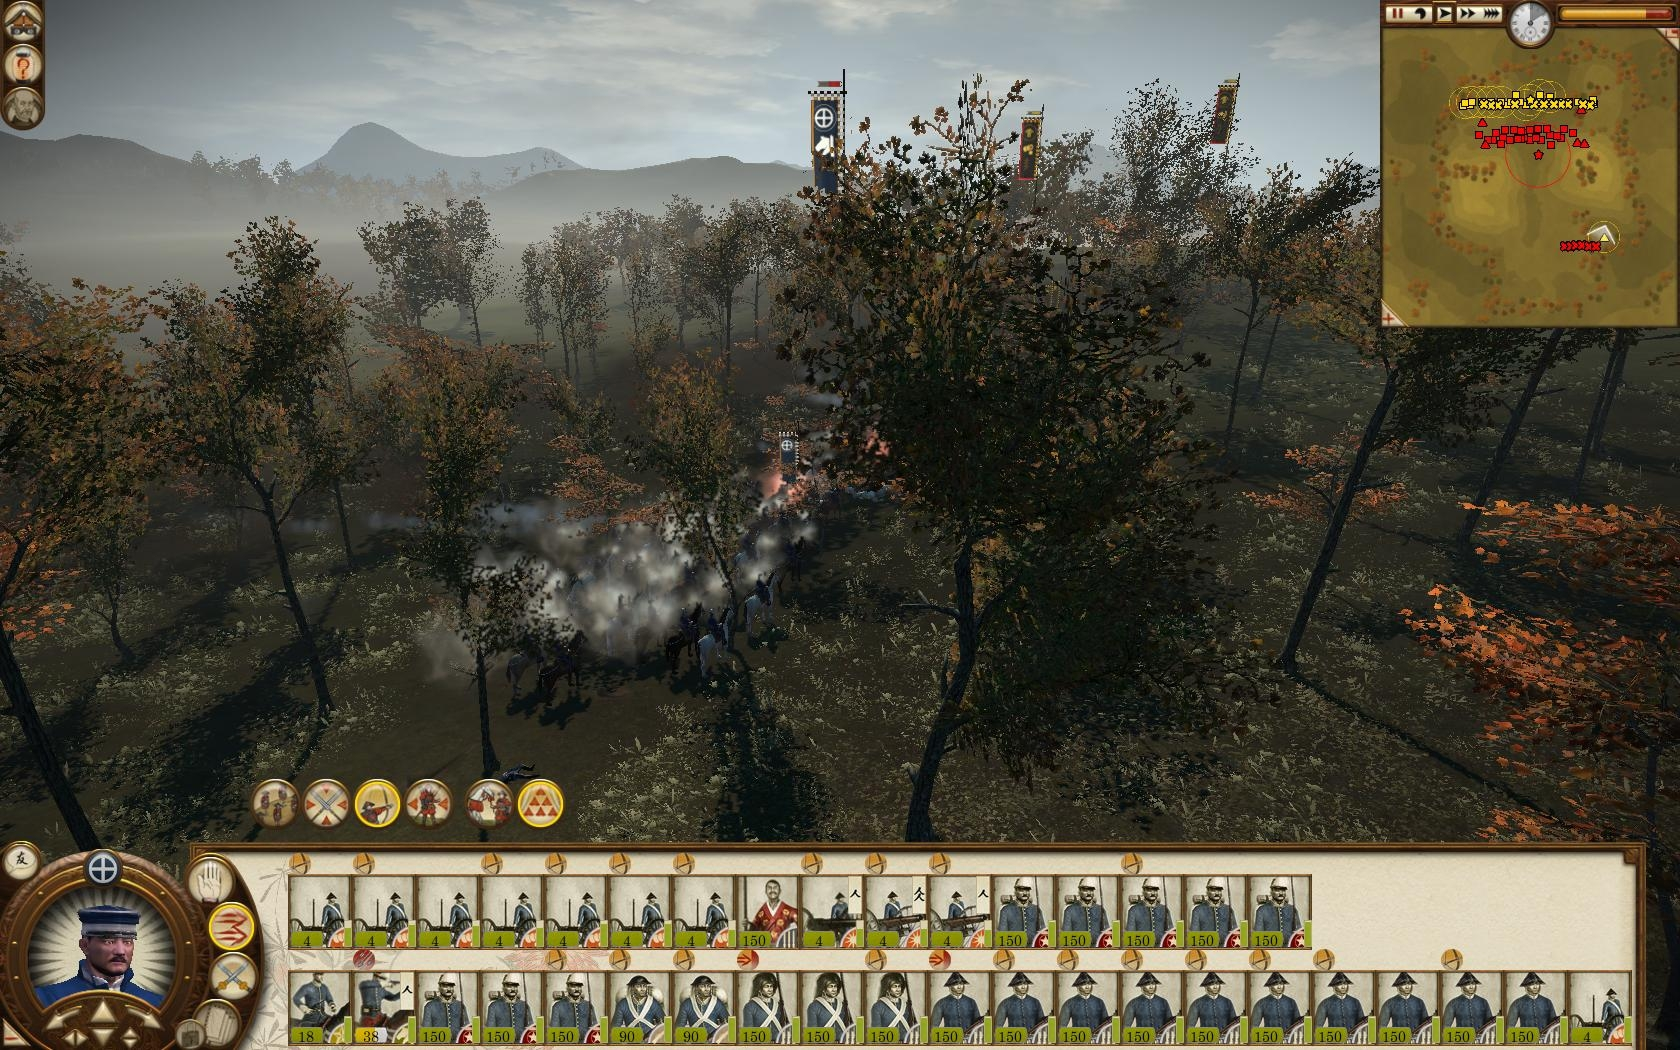 how to change rome total war camera to shogun